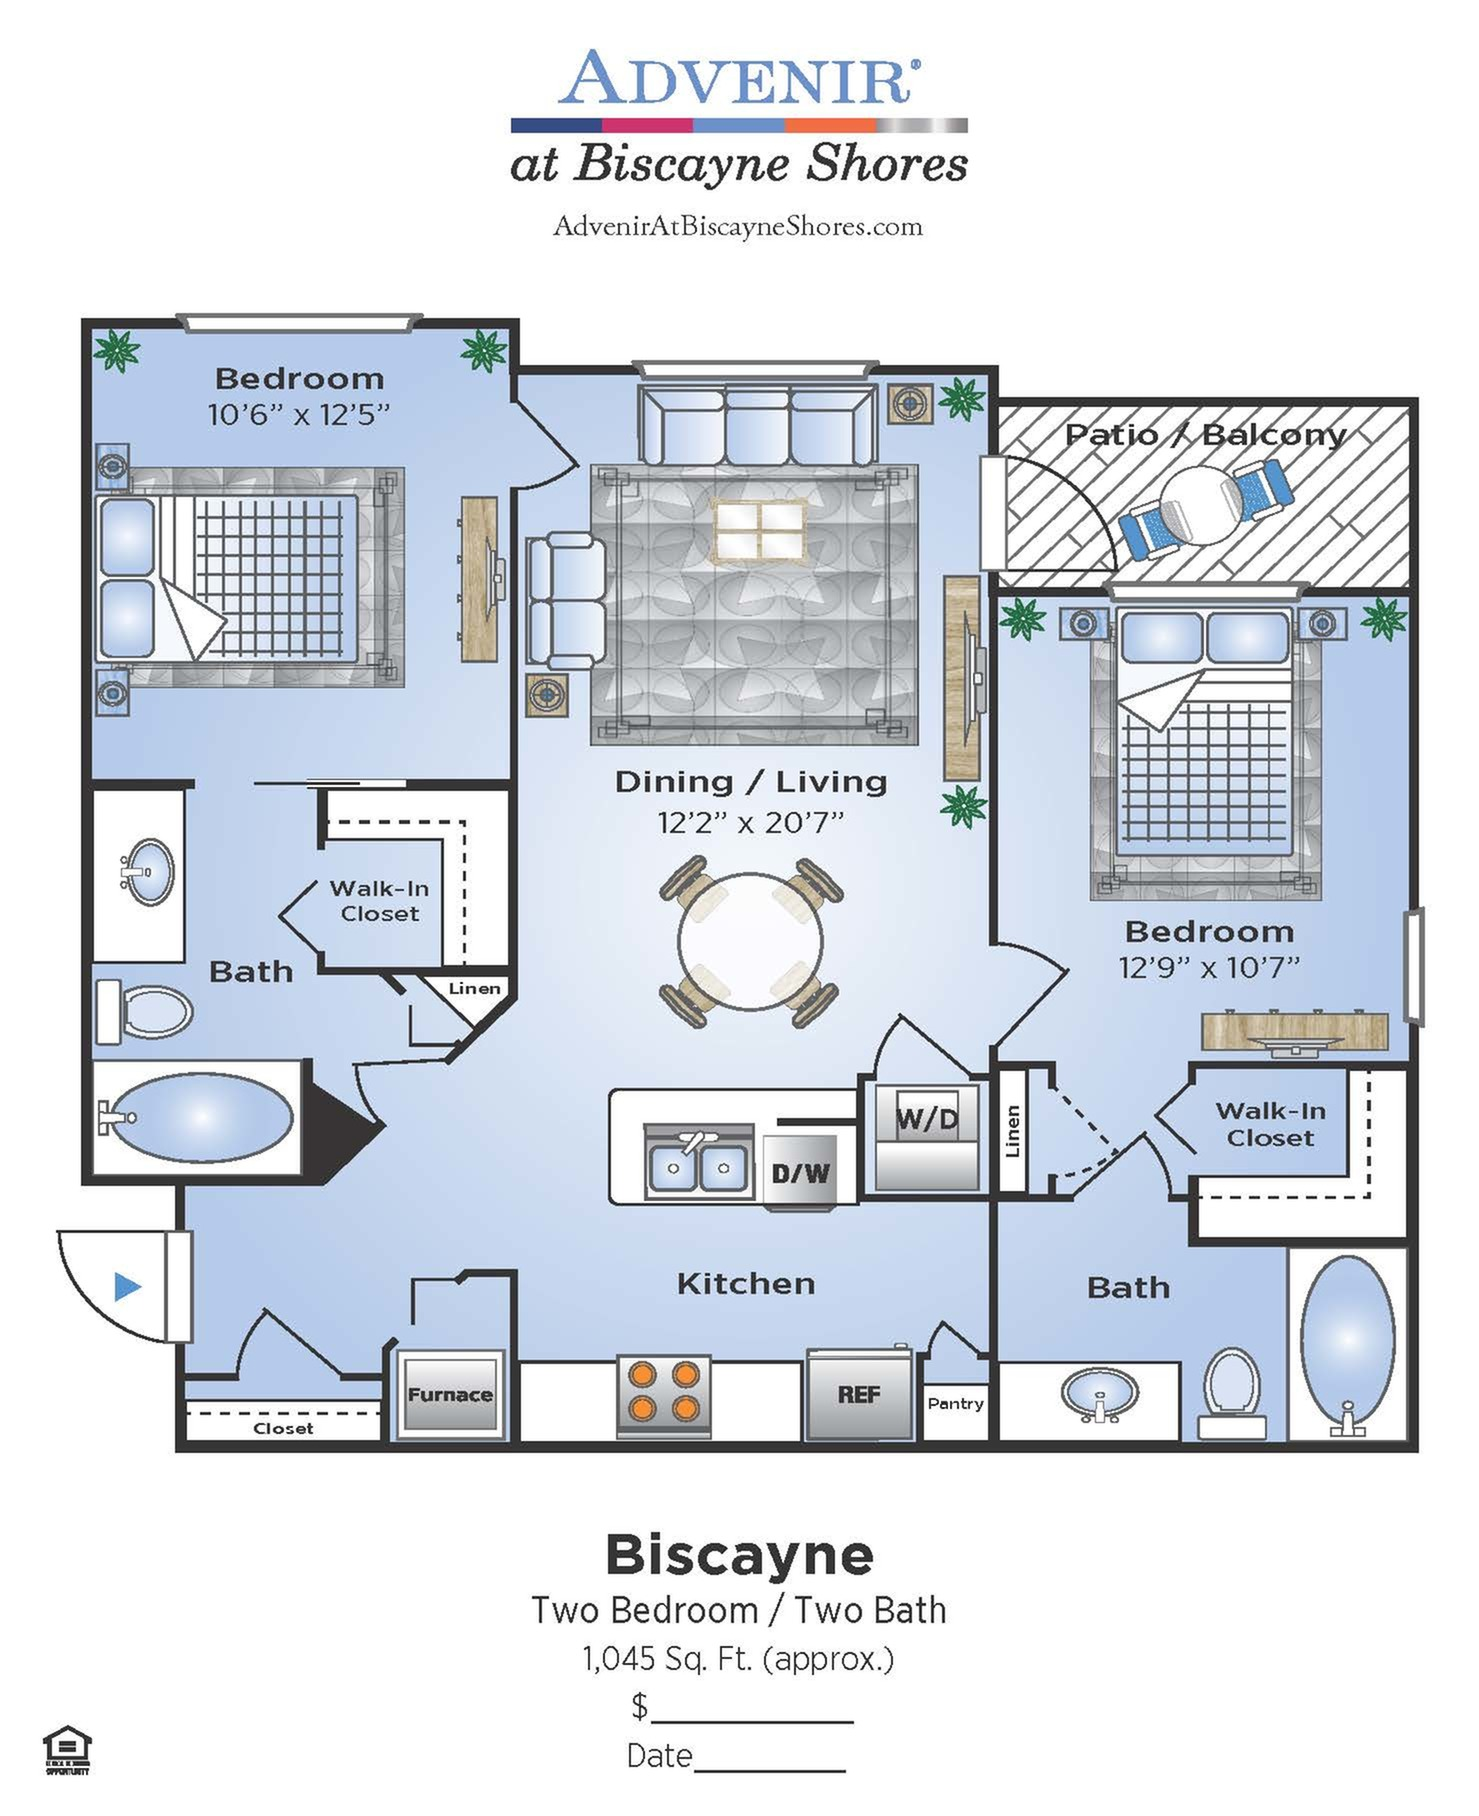 2 Bedroom Floor Plan | Miami Biscayne Apartments | Advenir at Biscayne Shores